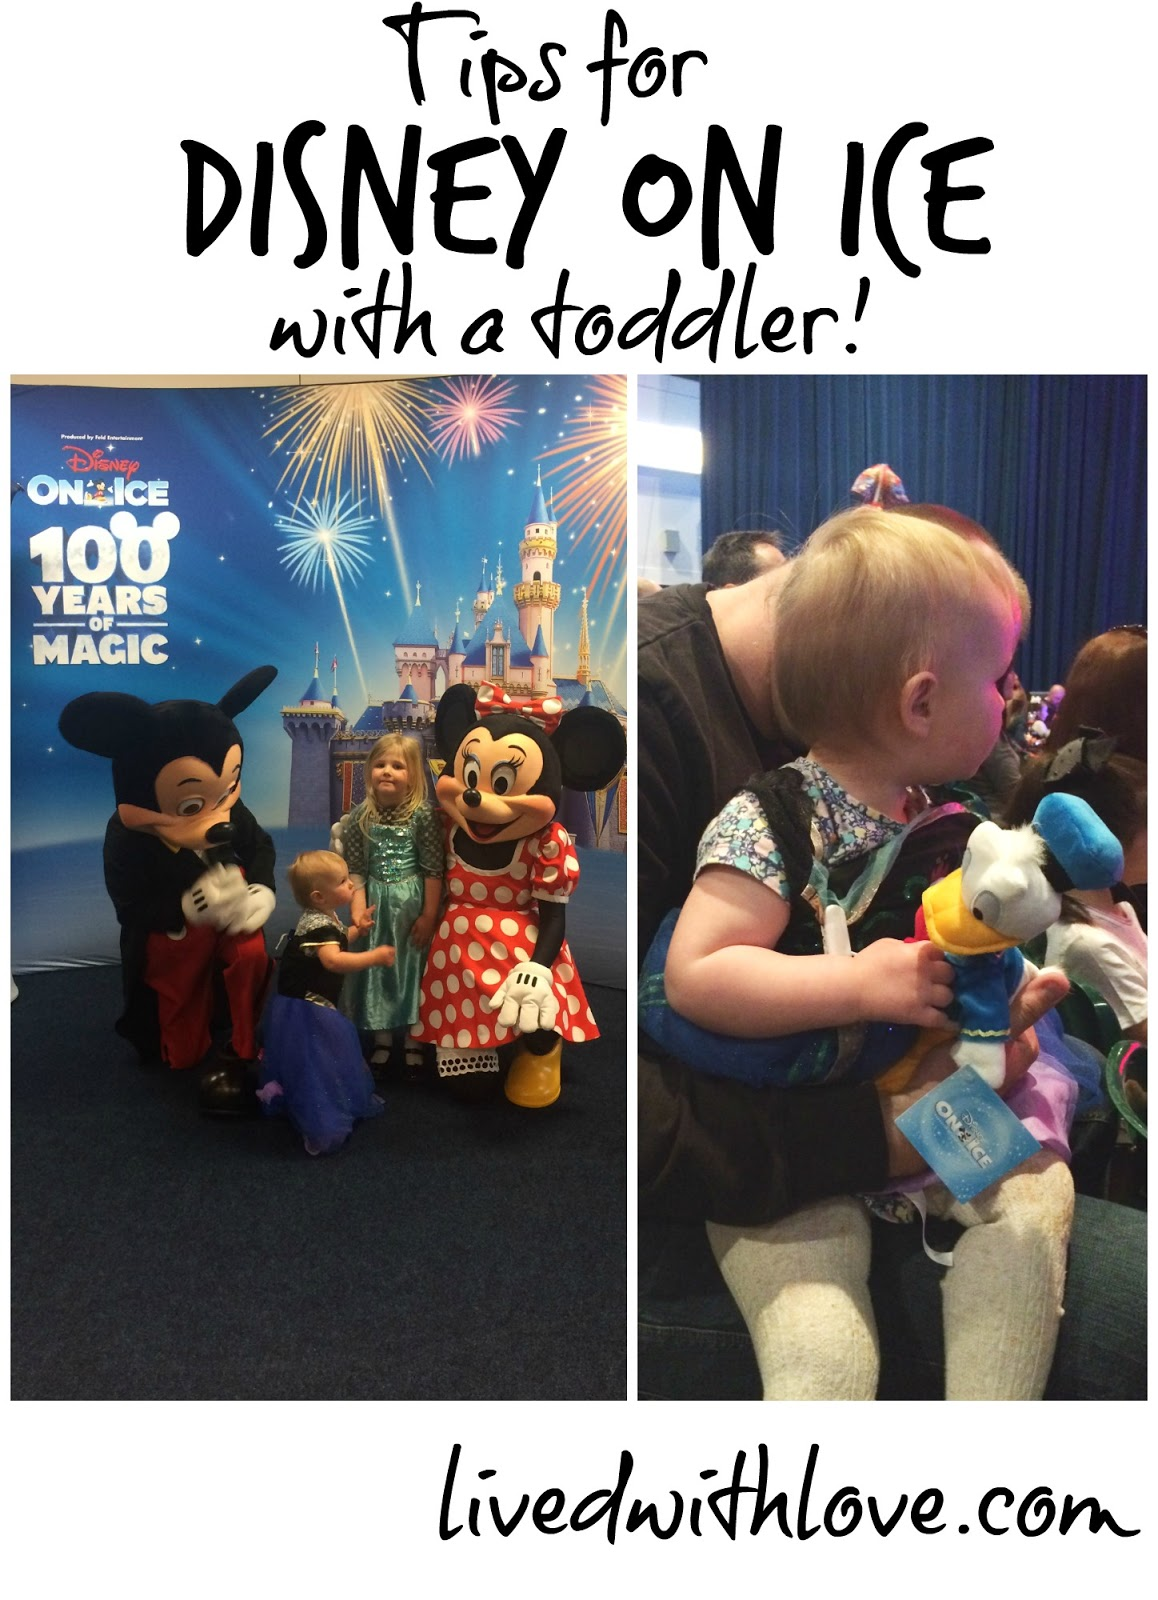 Disney on Ice with a toddler